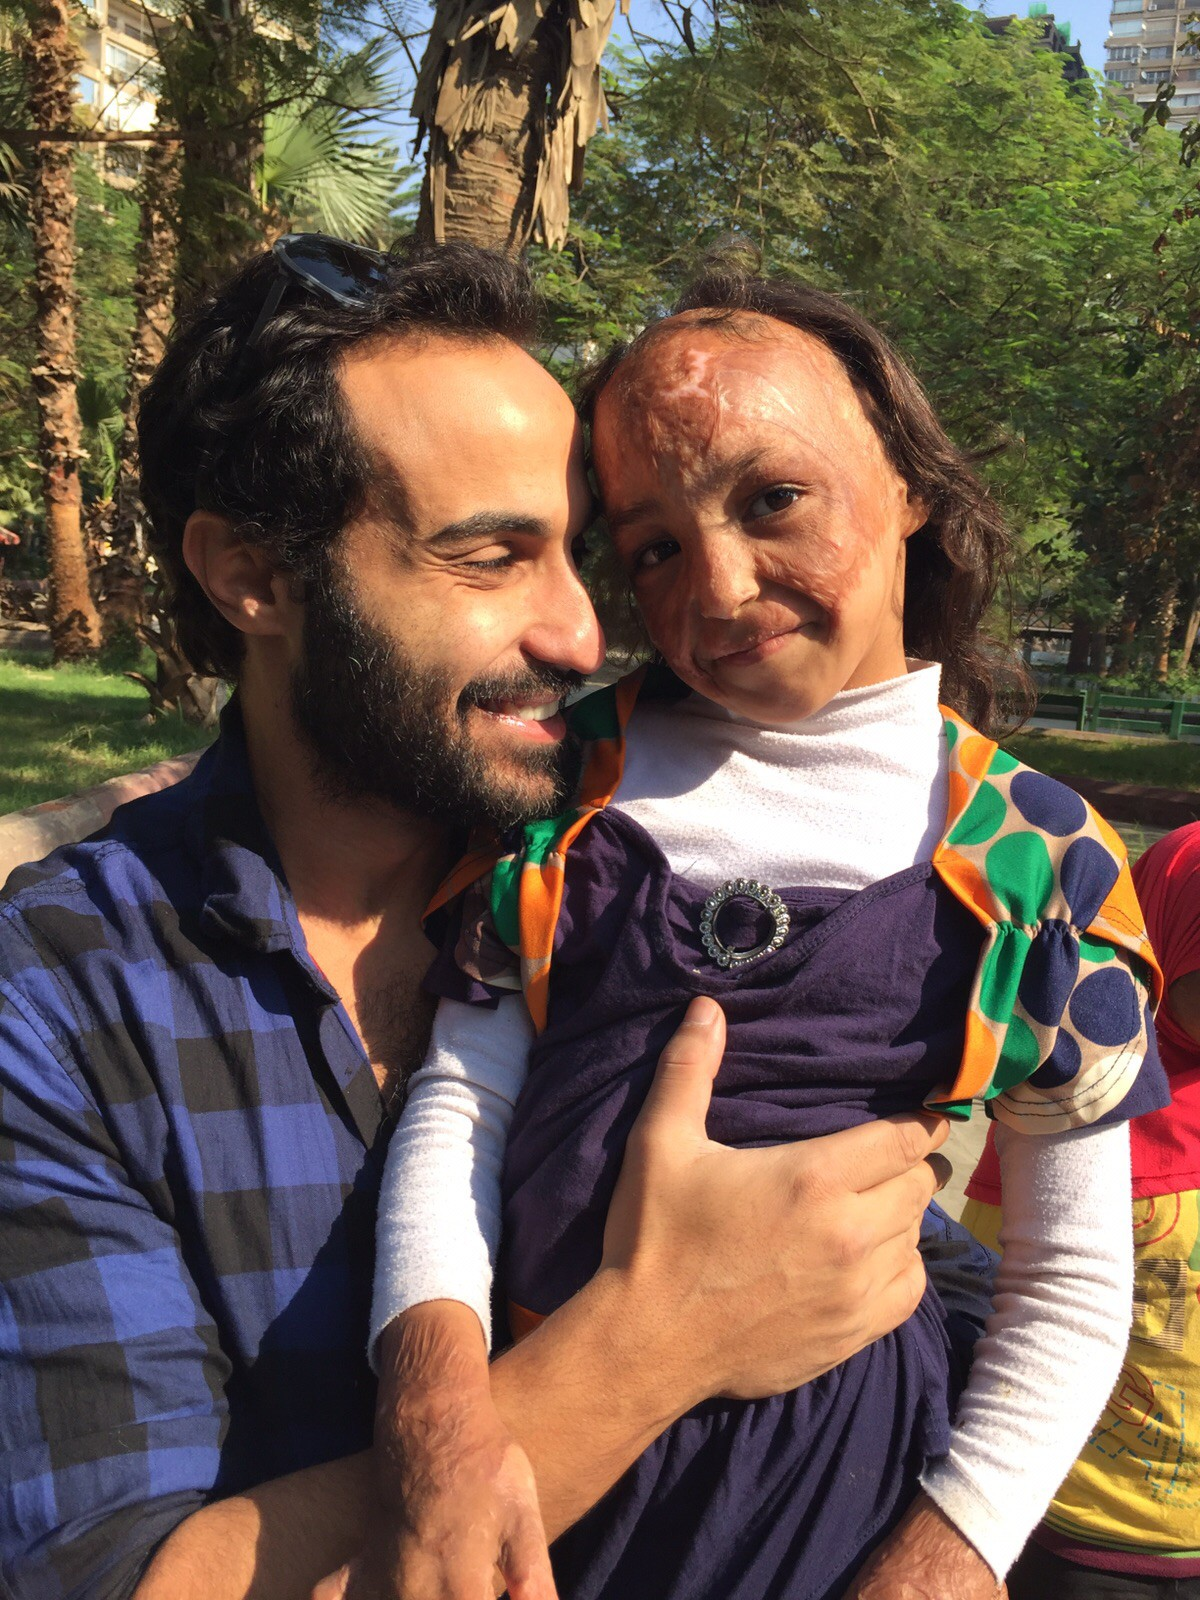 Ahmed Fahmy with burn victim